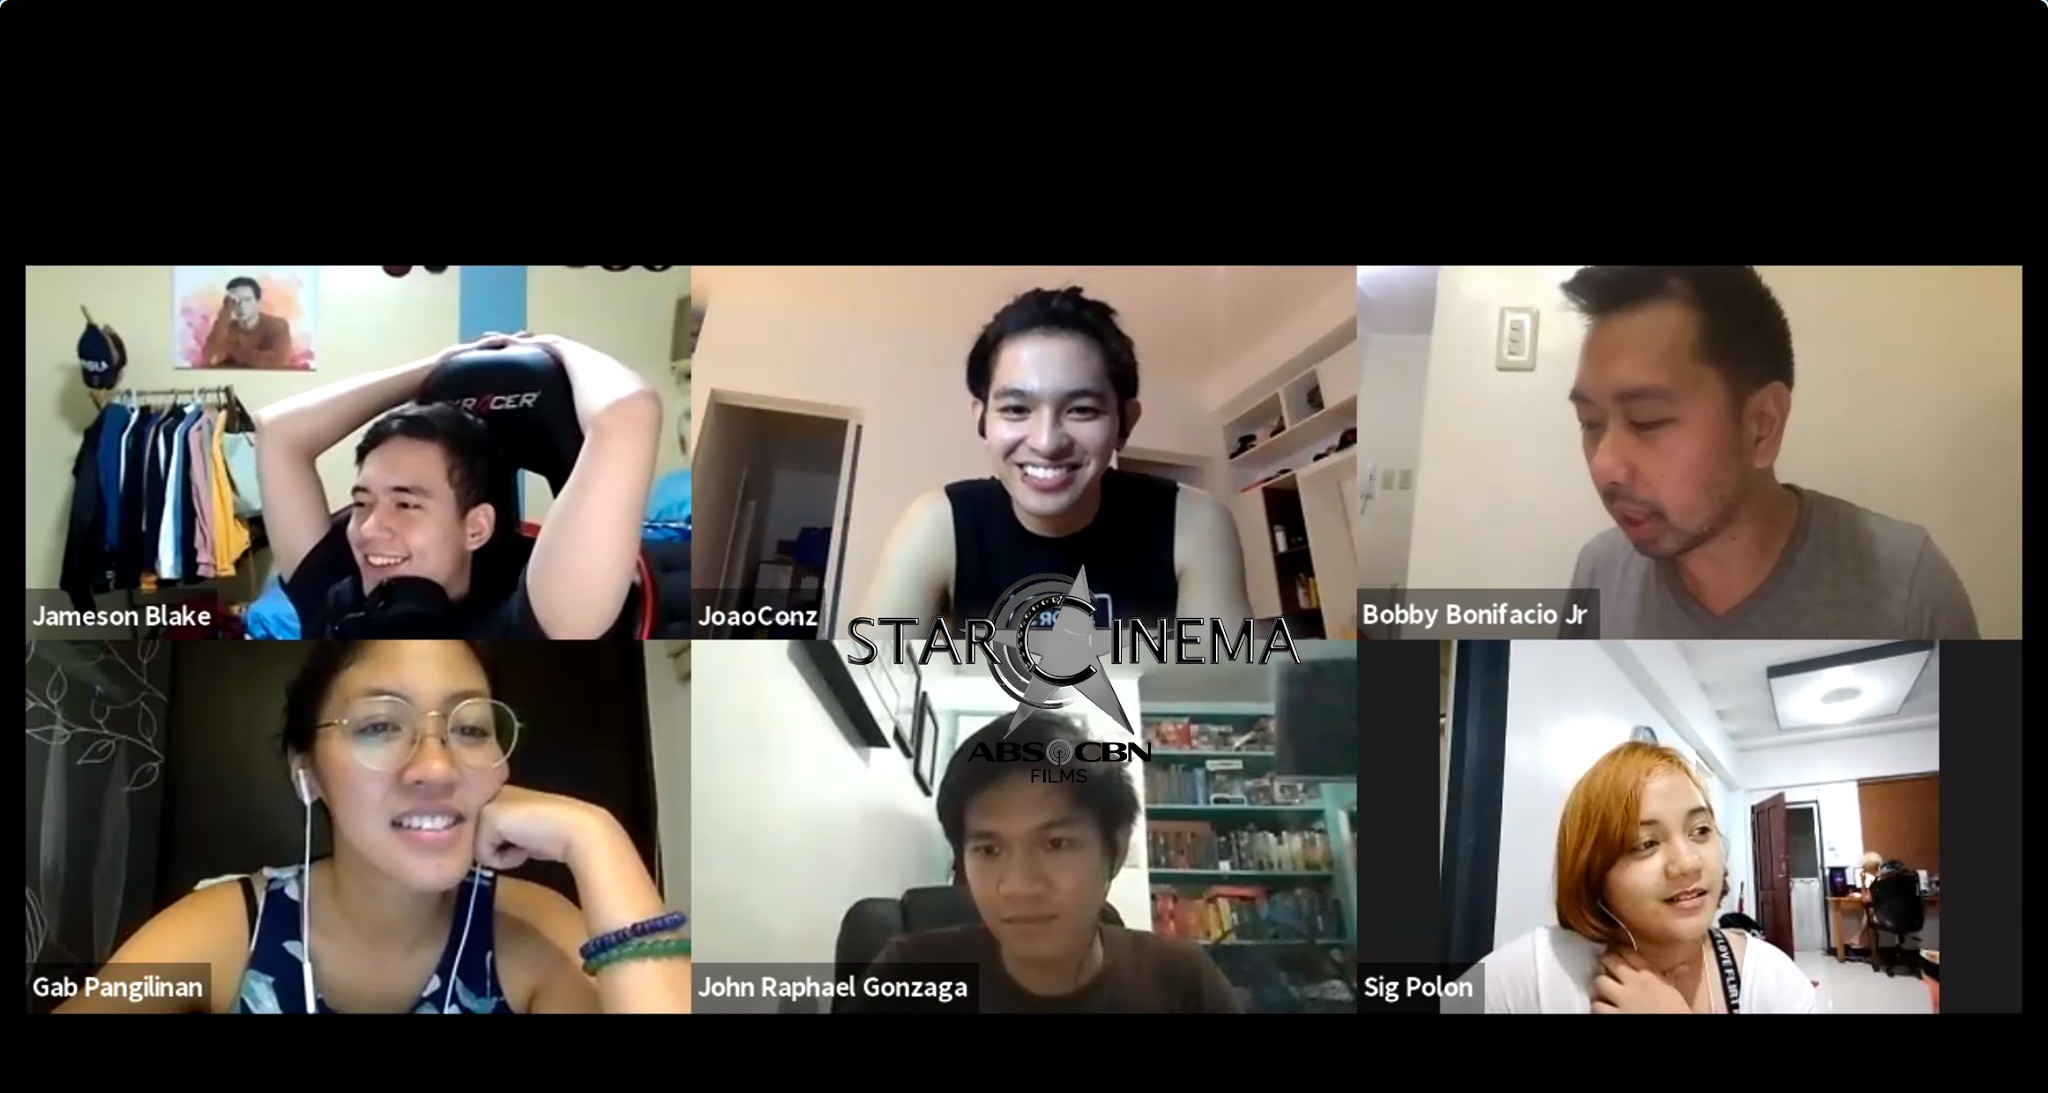 Fun virtual meeting with the cast and production!